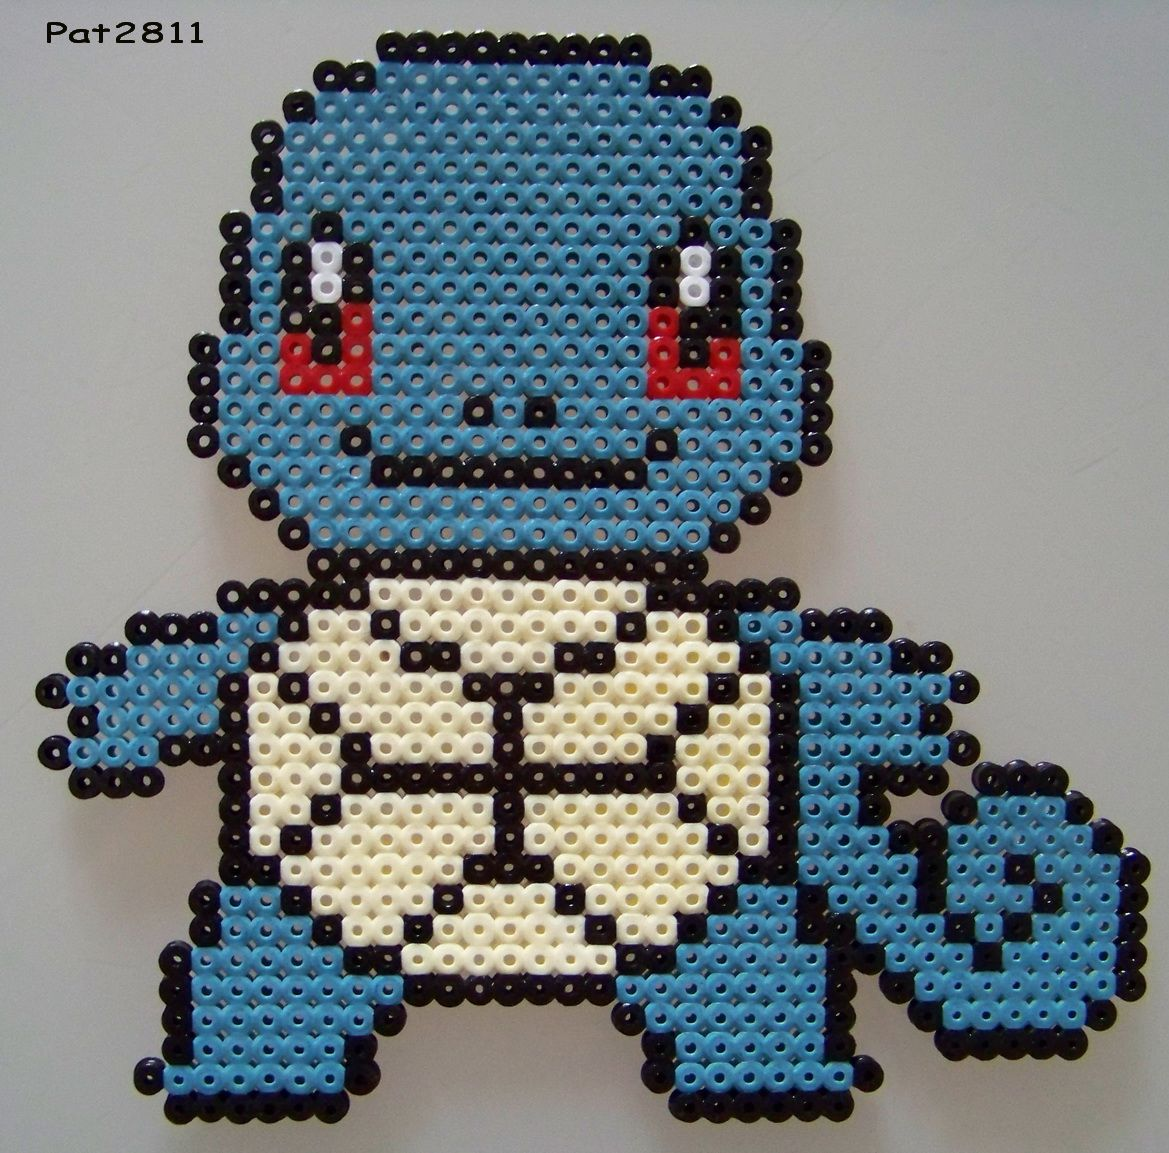 perles a repasser pokemon pixel patterns perler. Black Bedroom Furniture Sets. Home Design Ideas